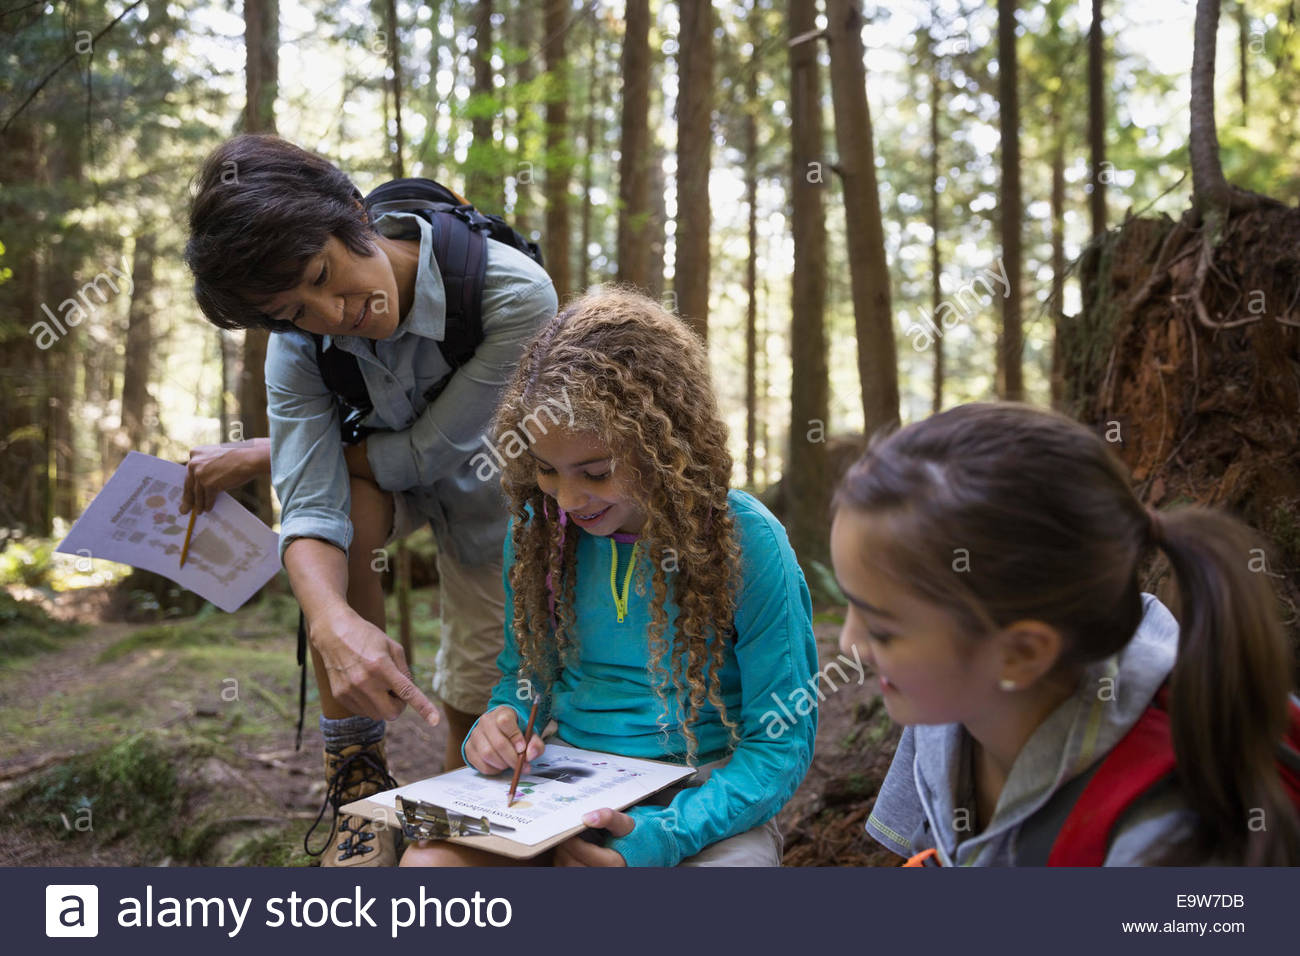 Teacher and children with clipboards in woods - Stock Image